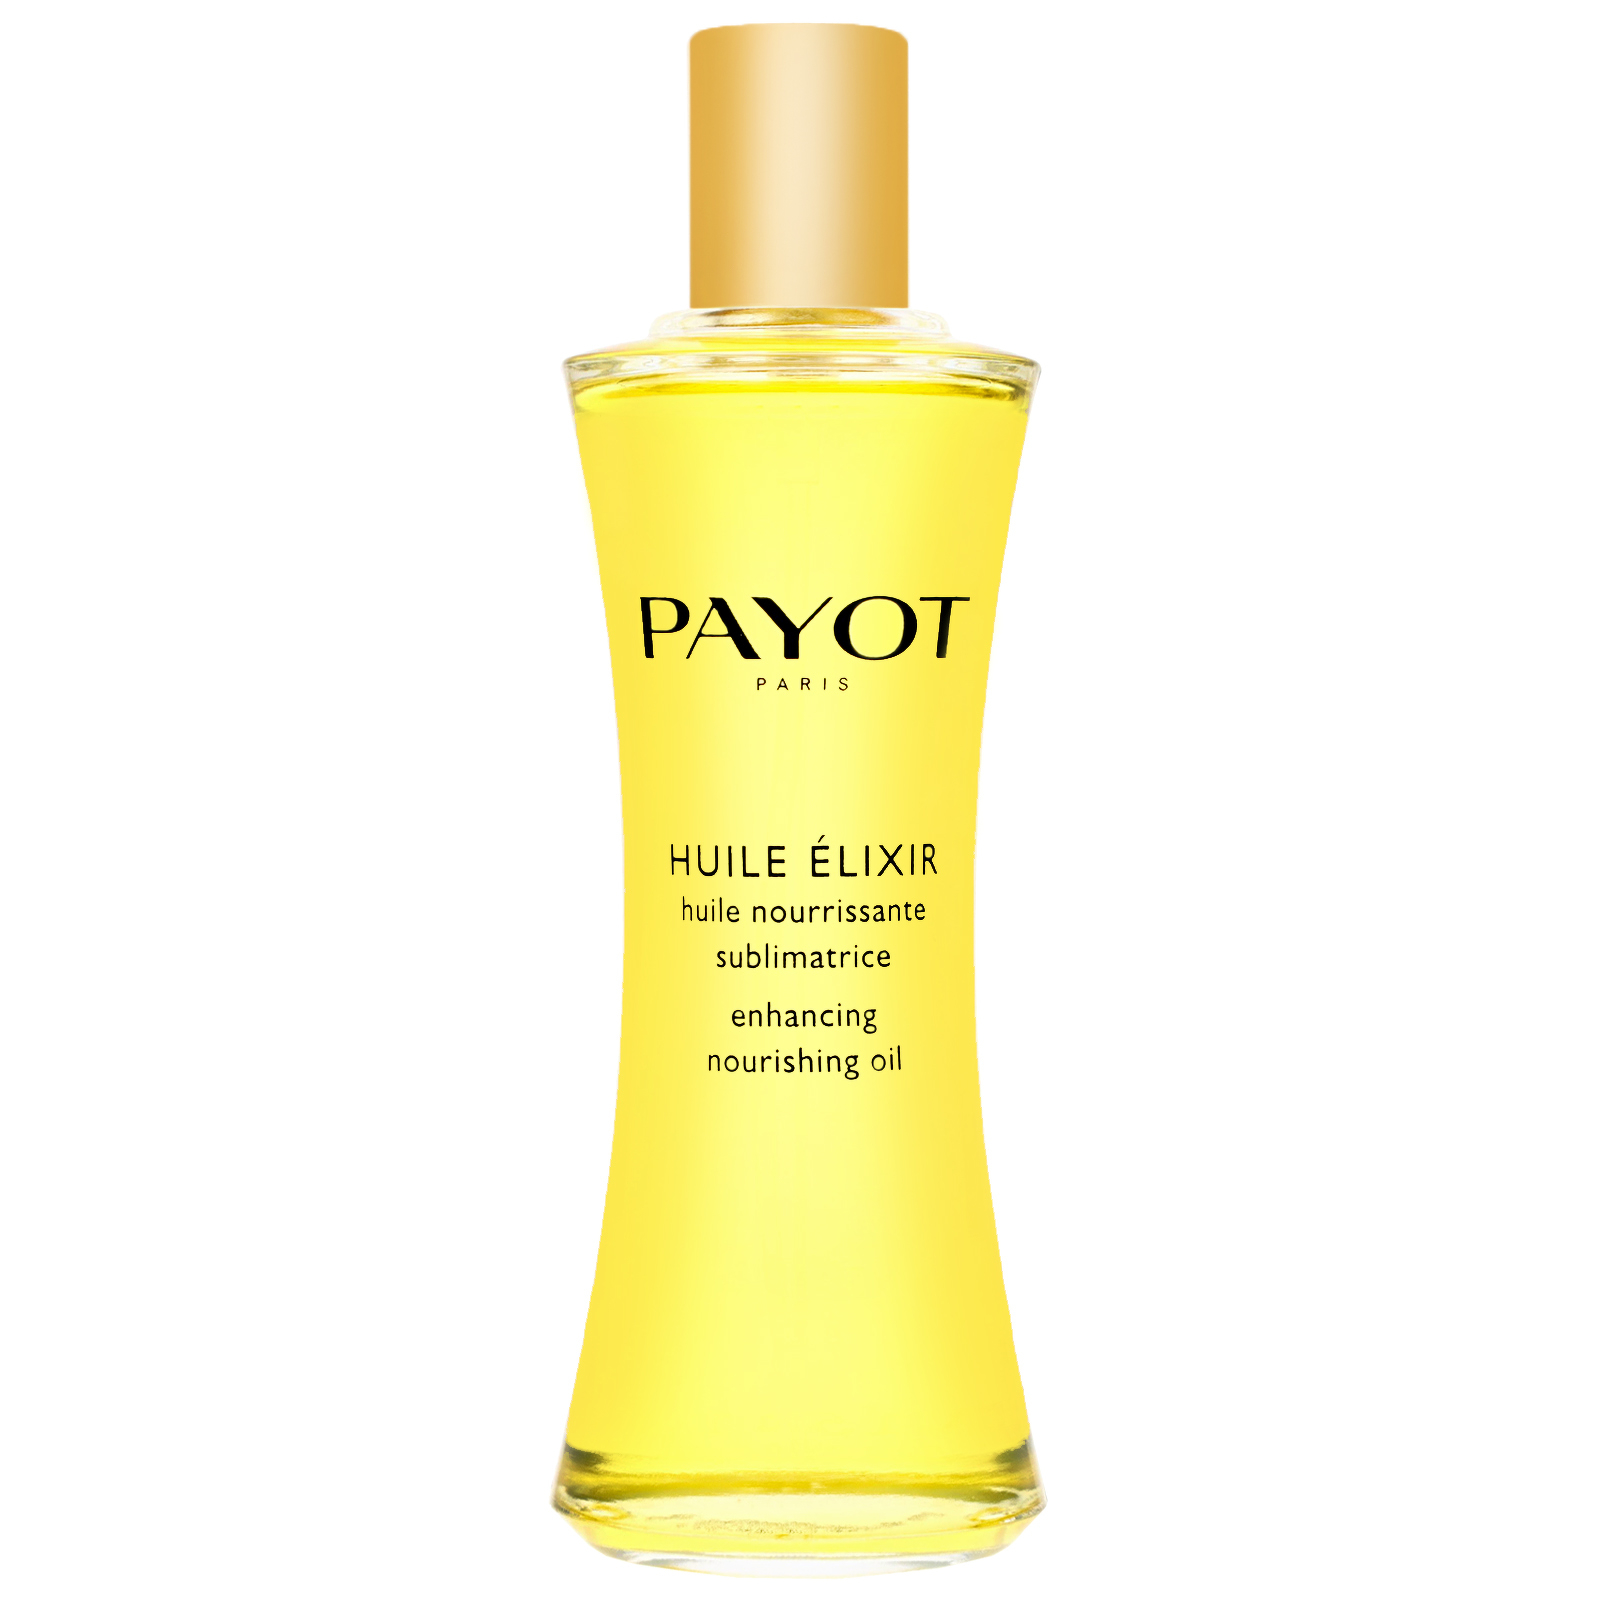 Payot Paris Body Élixir Huile Élixir: Enhancing Nourishing Oil 100ml